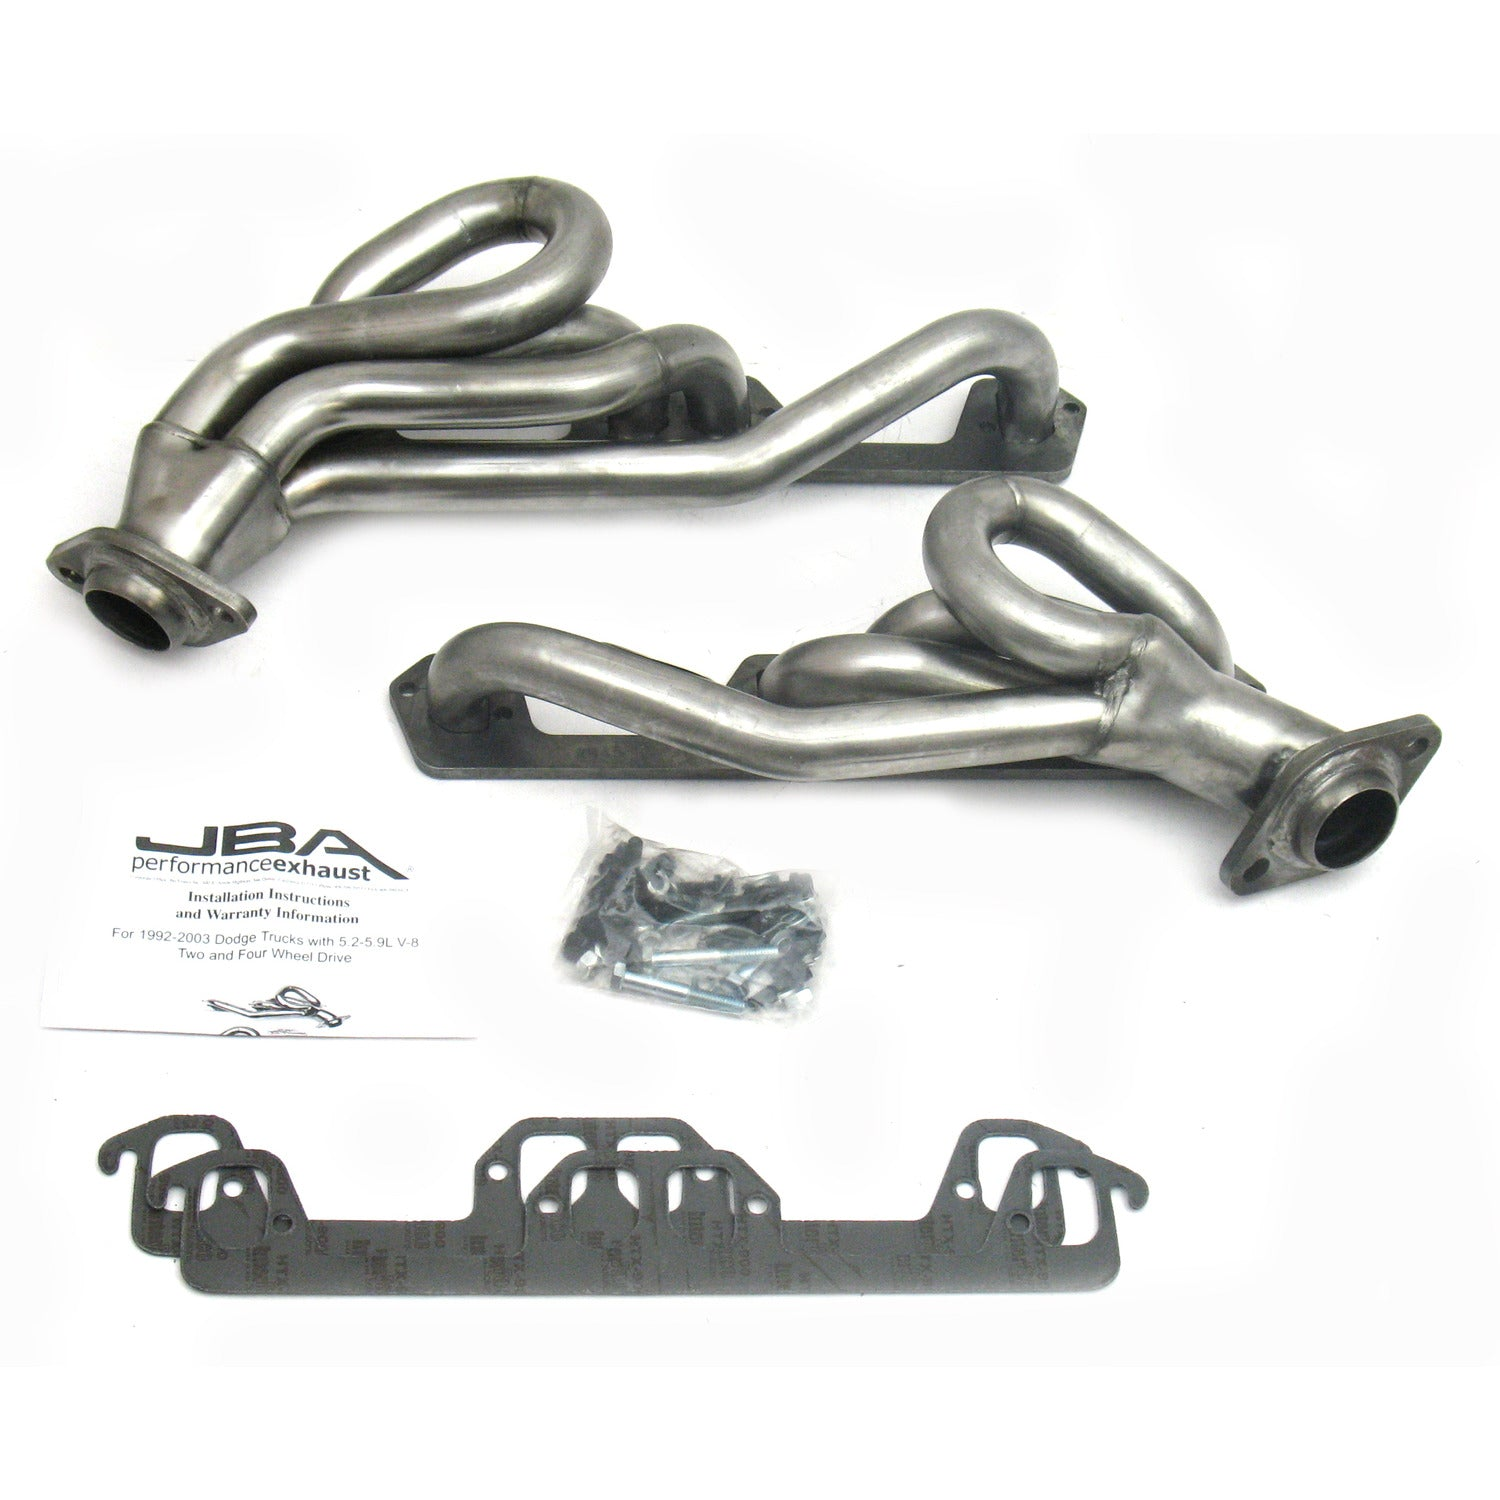 "JBA Performance Exhaust 1945S-1 1 1/2"" Header Shorty Stainless Steel 96-02 Ram/Dakota/Durango"